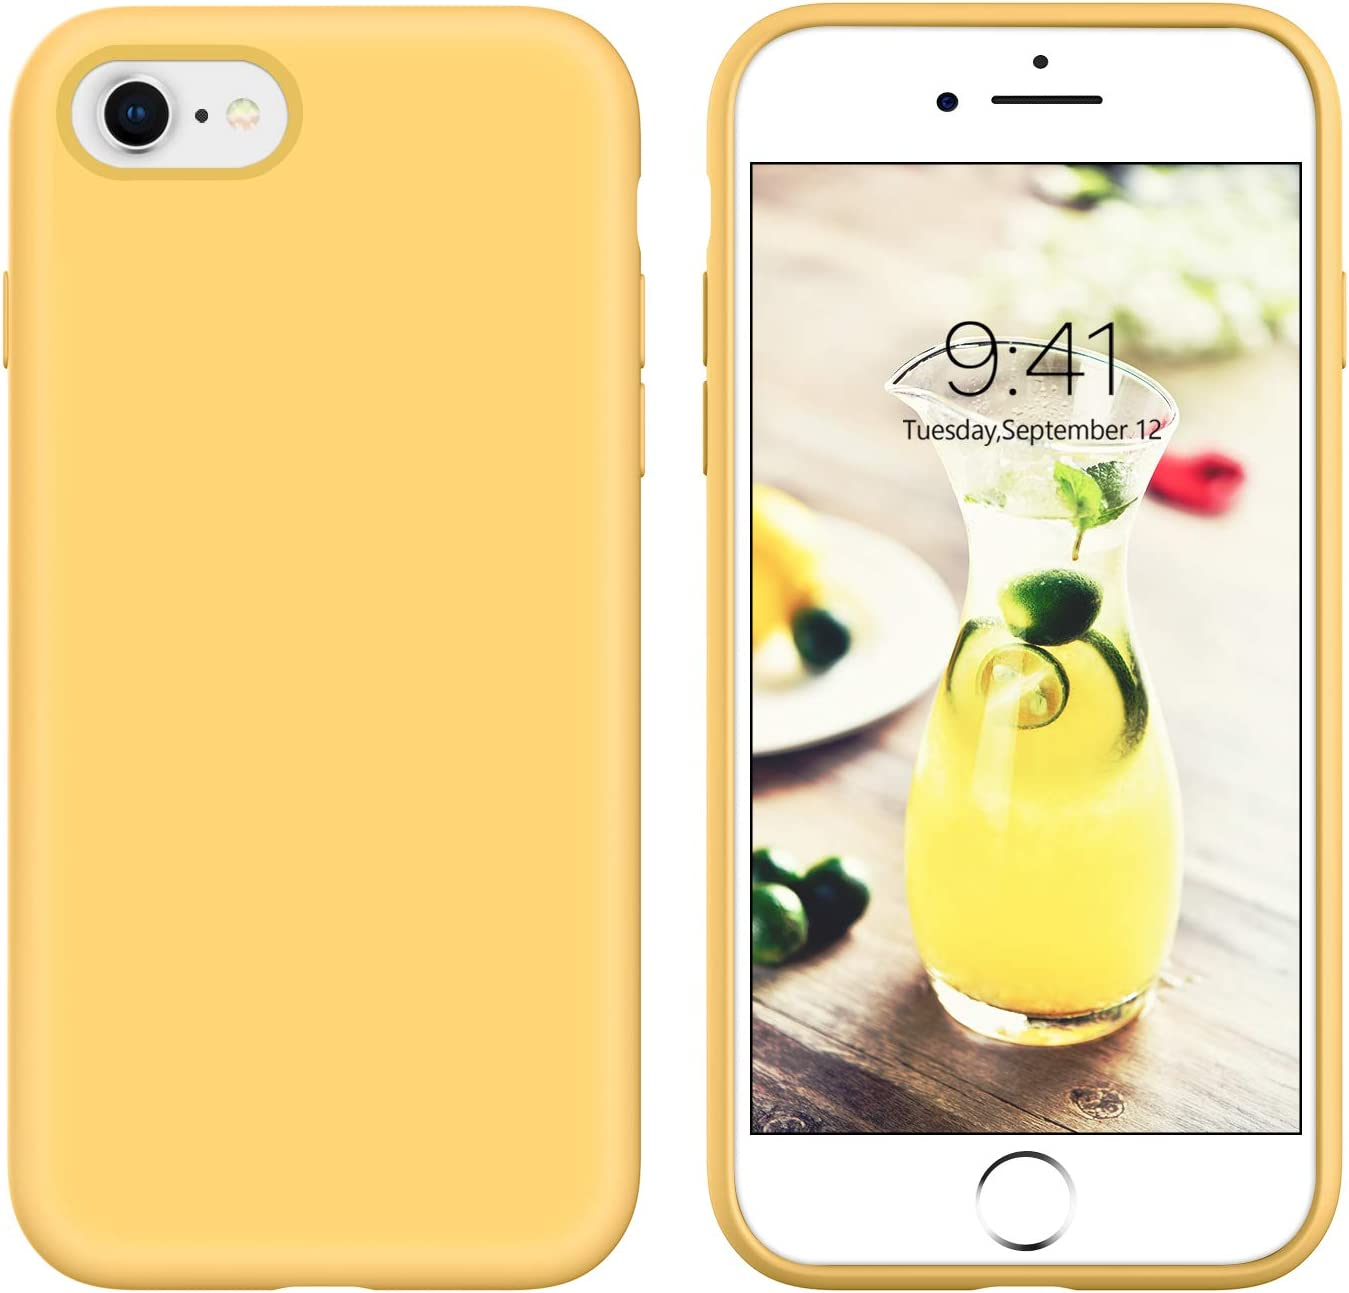 YINLAI iPhone SE 2020 Case iPhone 8 Case iPhone 7 Case Slim Liquid Silicone Hybrid Shockproof Bumper Protective Phone Cover for iPhone SE 2nd Generation/iPhone 8/7 Girls Women Men Summer Yellow